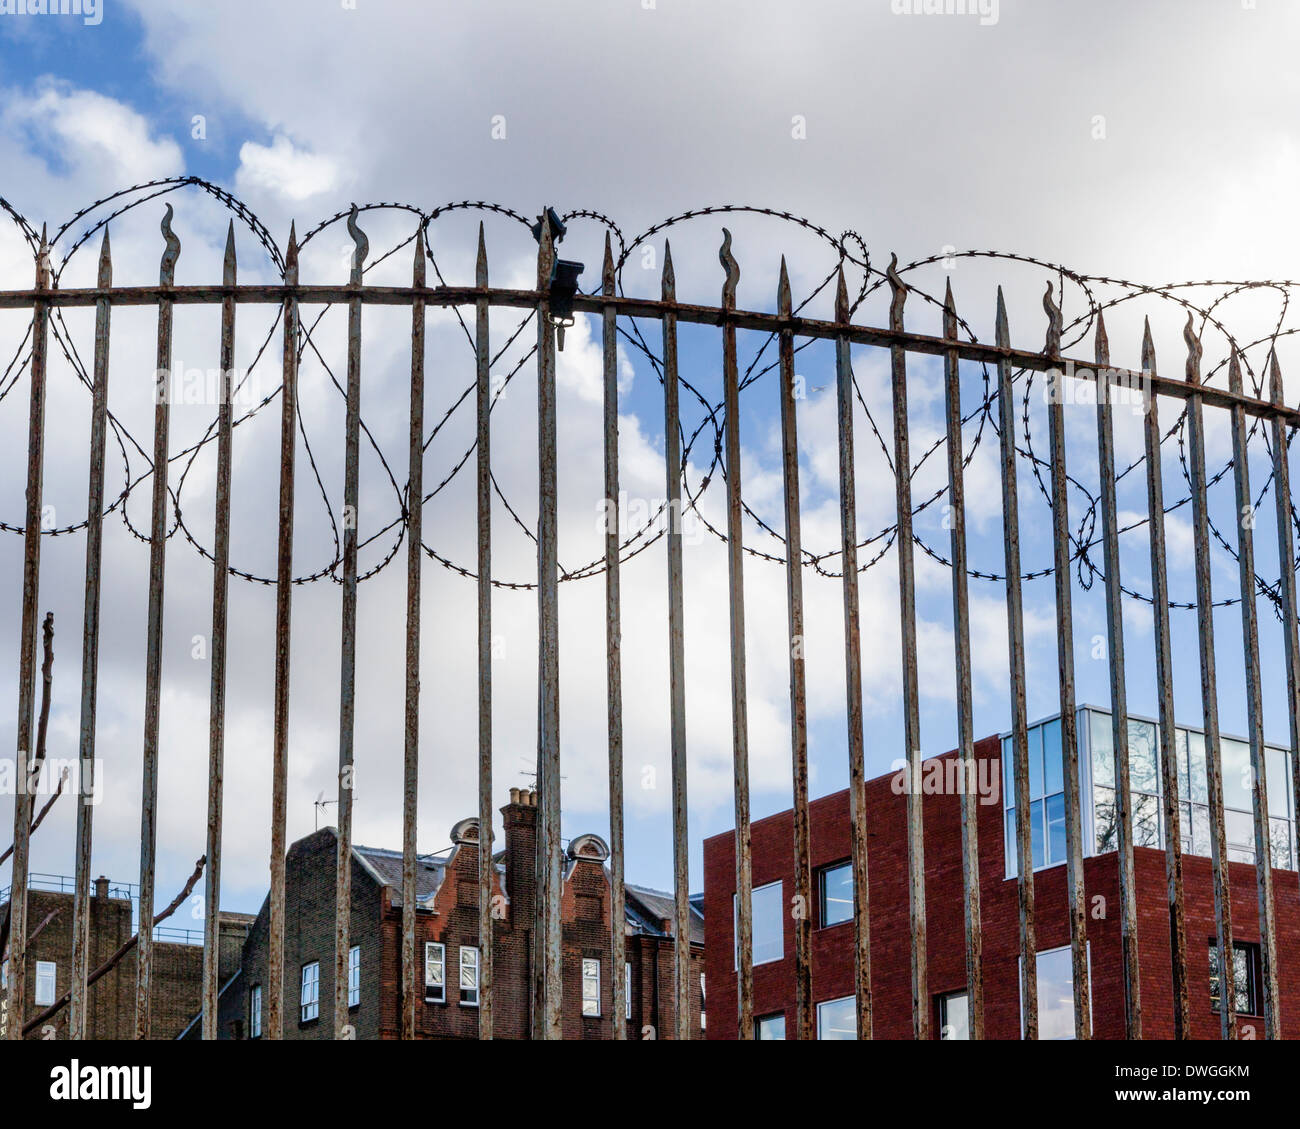 Buildings behind barbed wire and security fence in St George's Road, South London - Stock Image